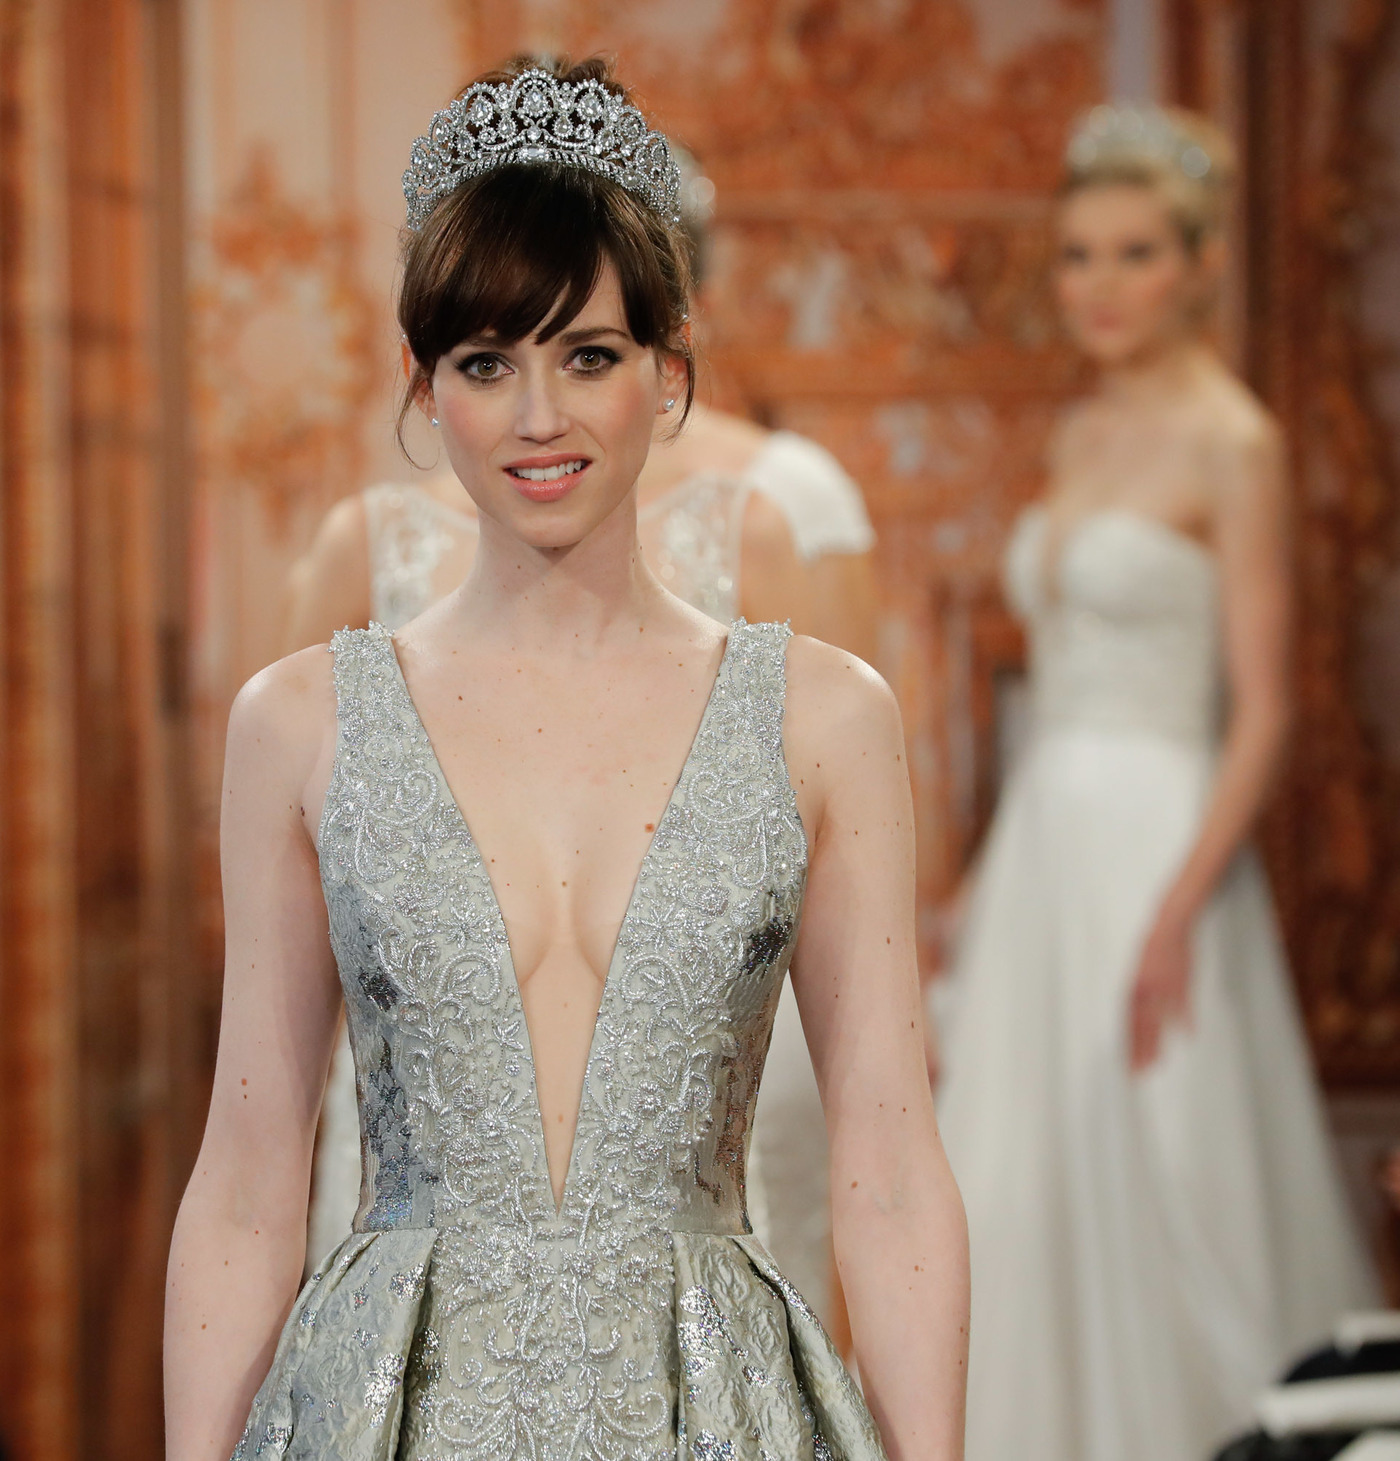 Brides Everywhere Are Saying Yes To The Low-Cut Dress : NPR